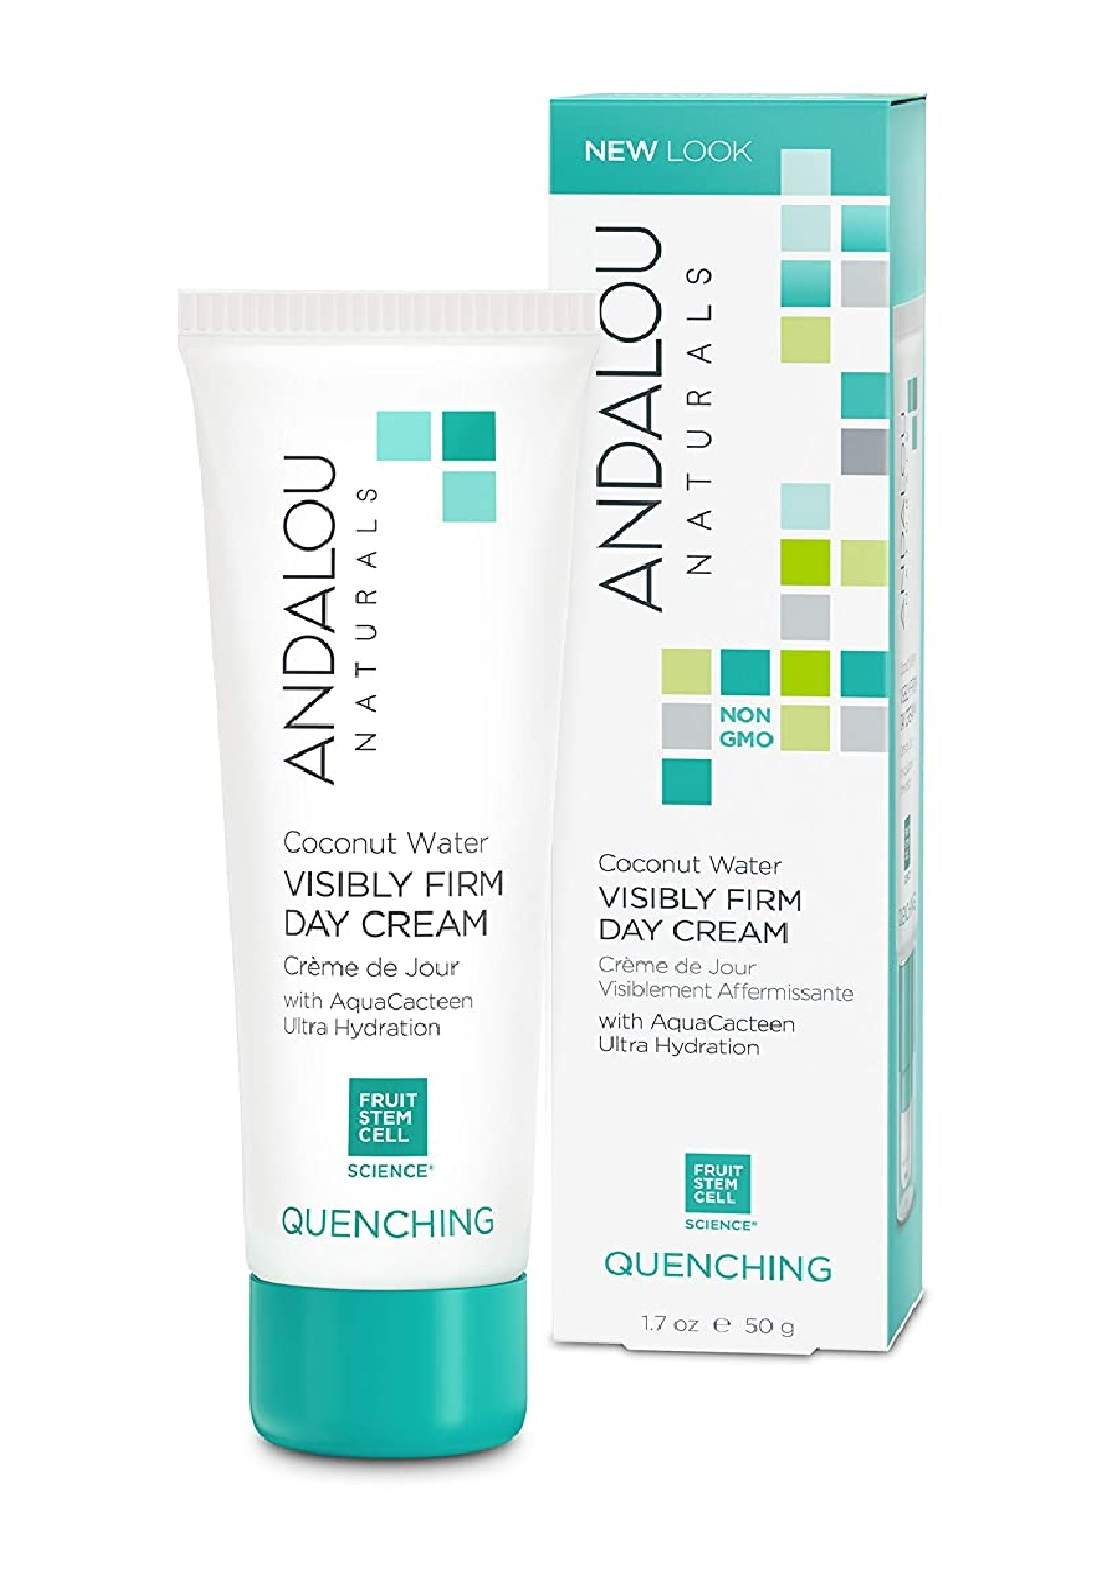 Andalou 0588 Naturals Visibly Firm Coconut Water Day Cream كريم نهاري